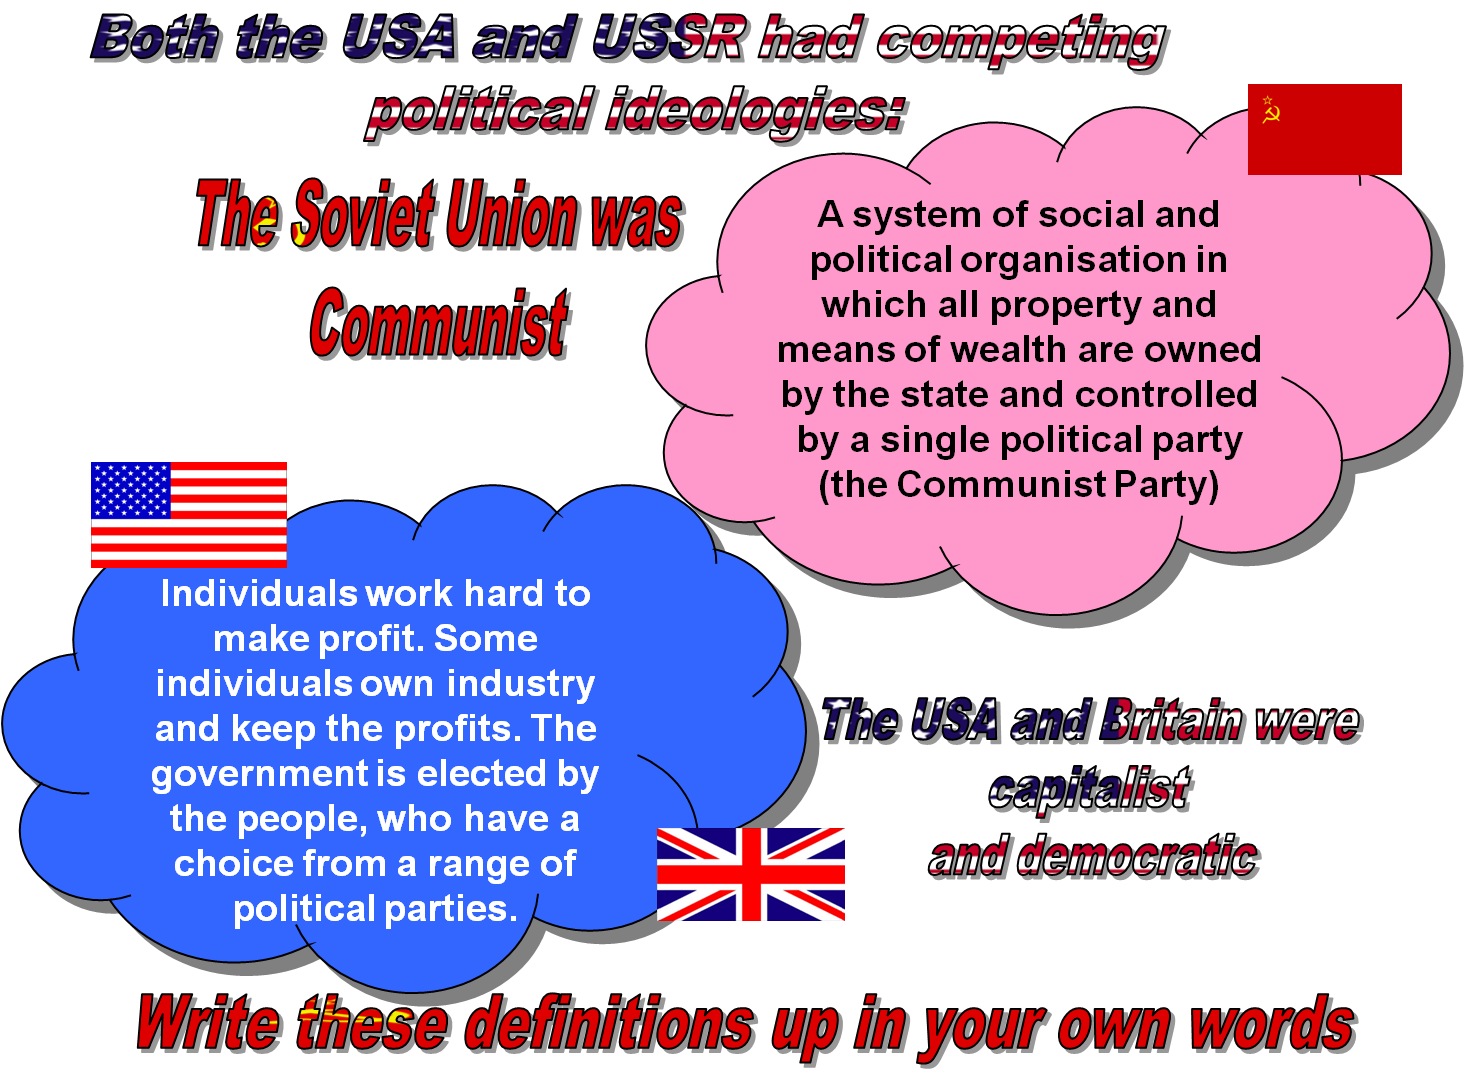 individualism and communilism essay Individualism essays society emphasizes surface appearance there is also a great deal of importance people give to winning at any cost today, to win, we often try to change who and what we are.